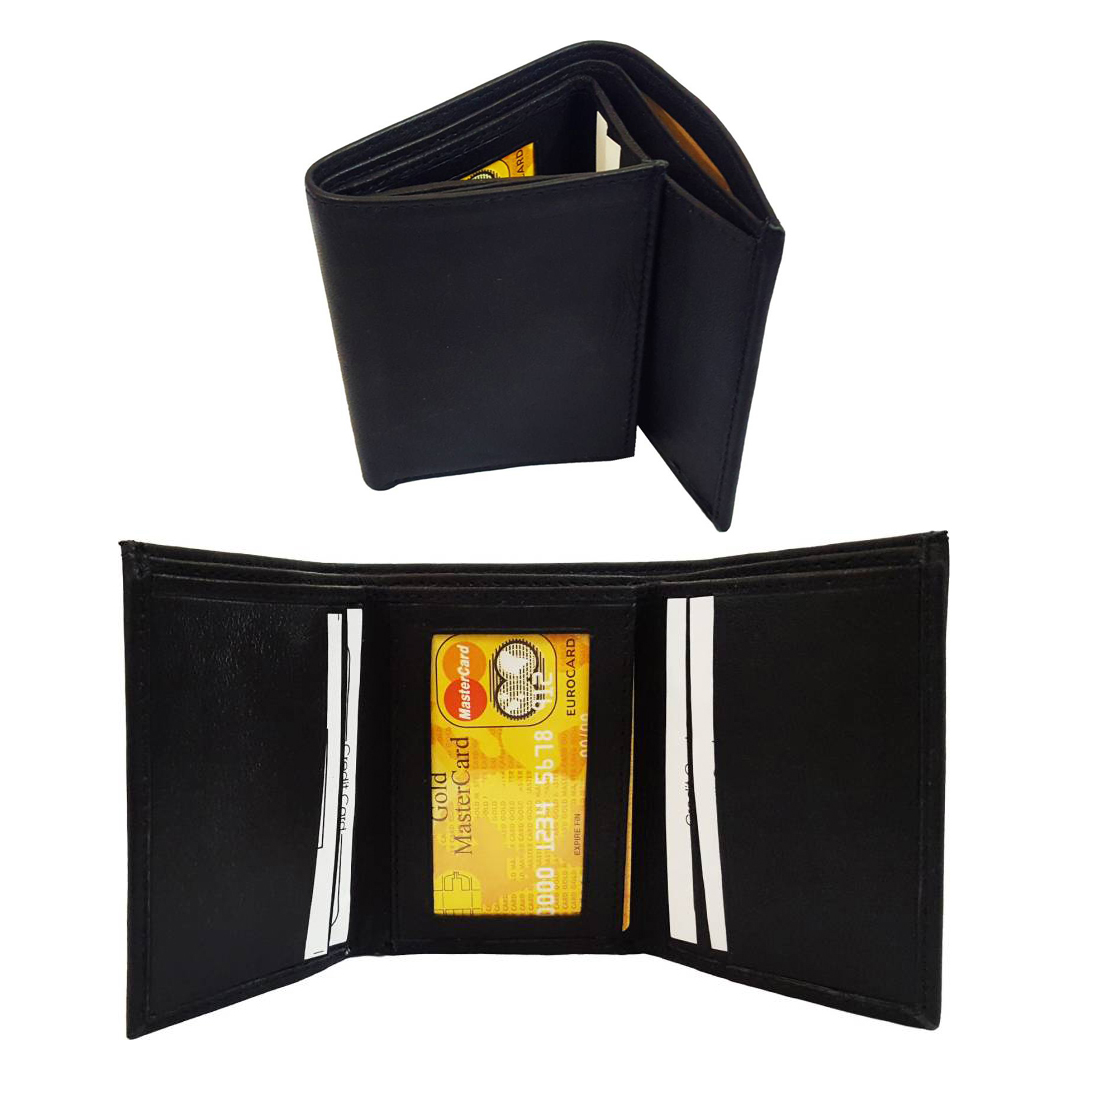 JARS Collections Stylish Leather Tri Fold Wallet